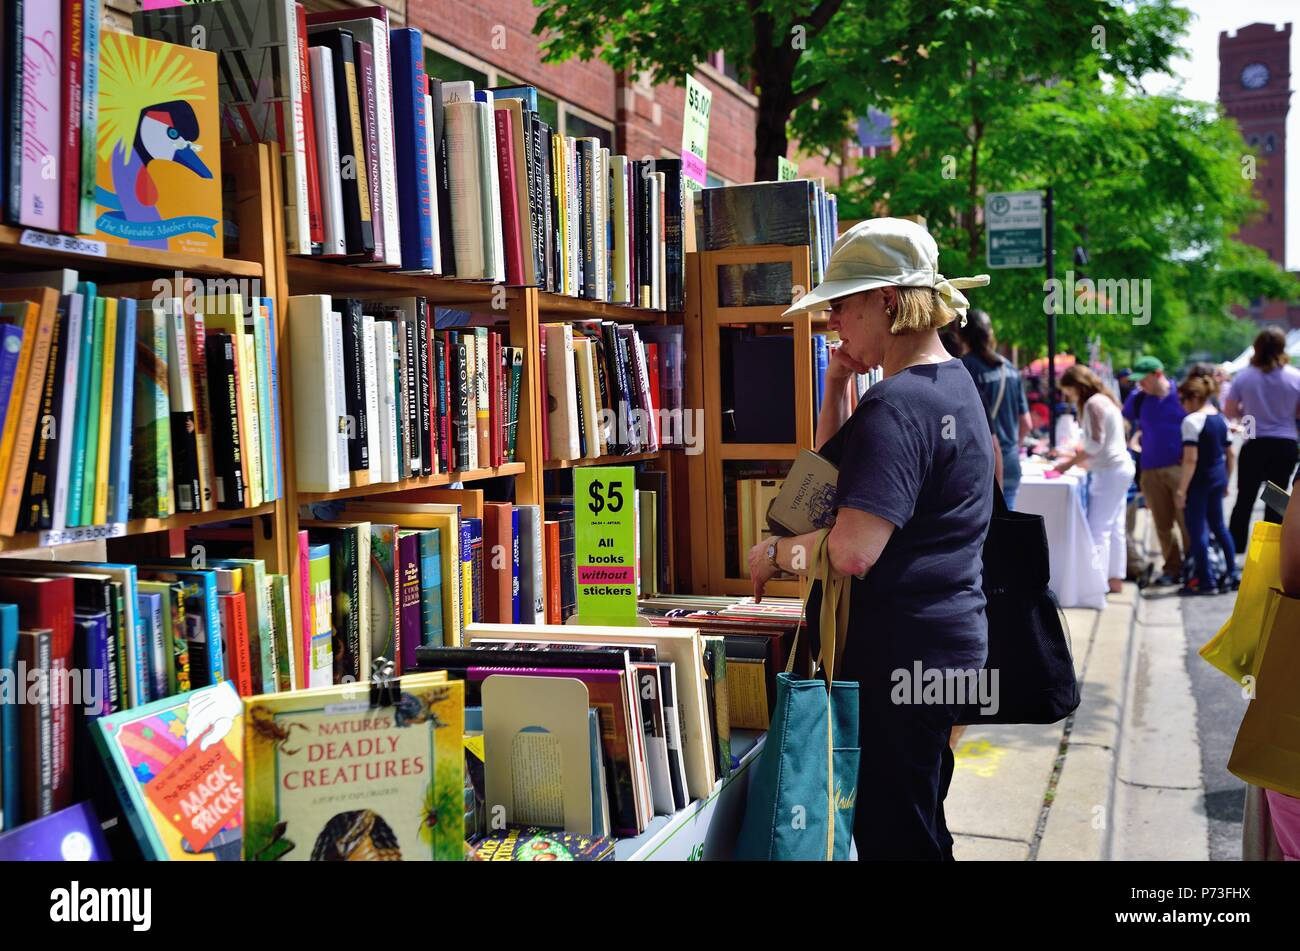 Chicago, Illinois, USA. Woman ponders a potential purchase at the annual Printers Row Lit Fest (formerly Printers Row Book Fair). The large street fes Stock Photo